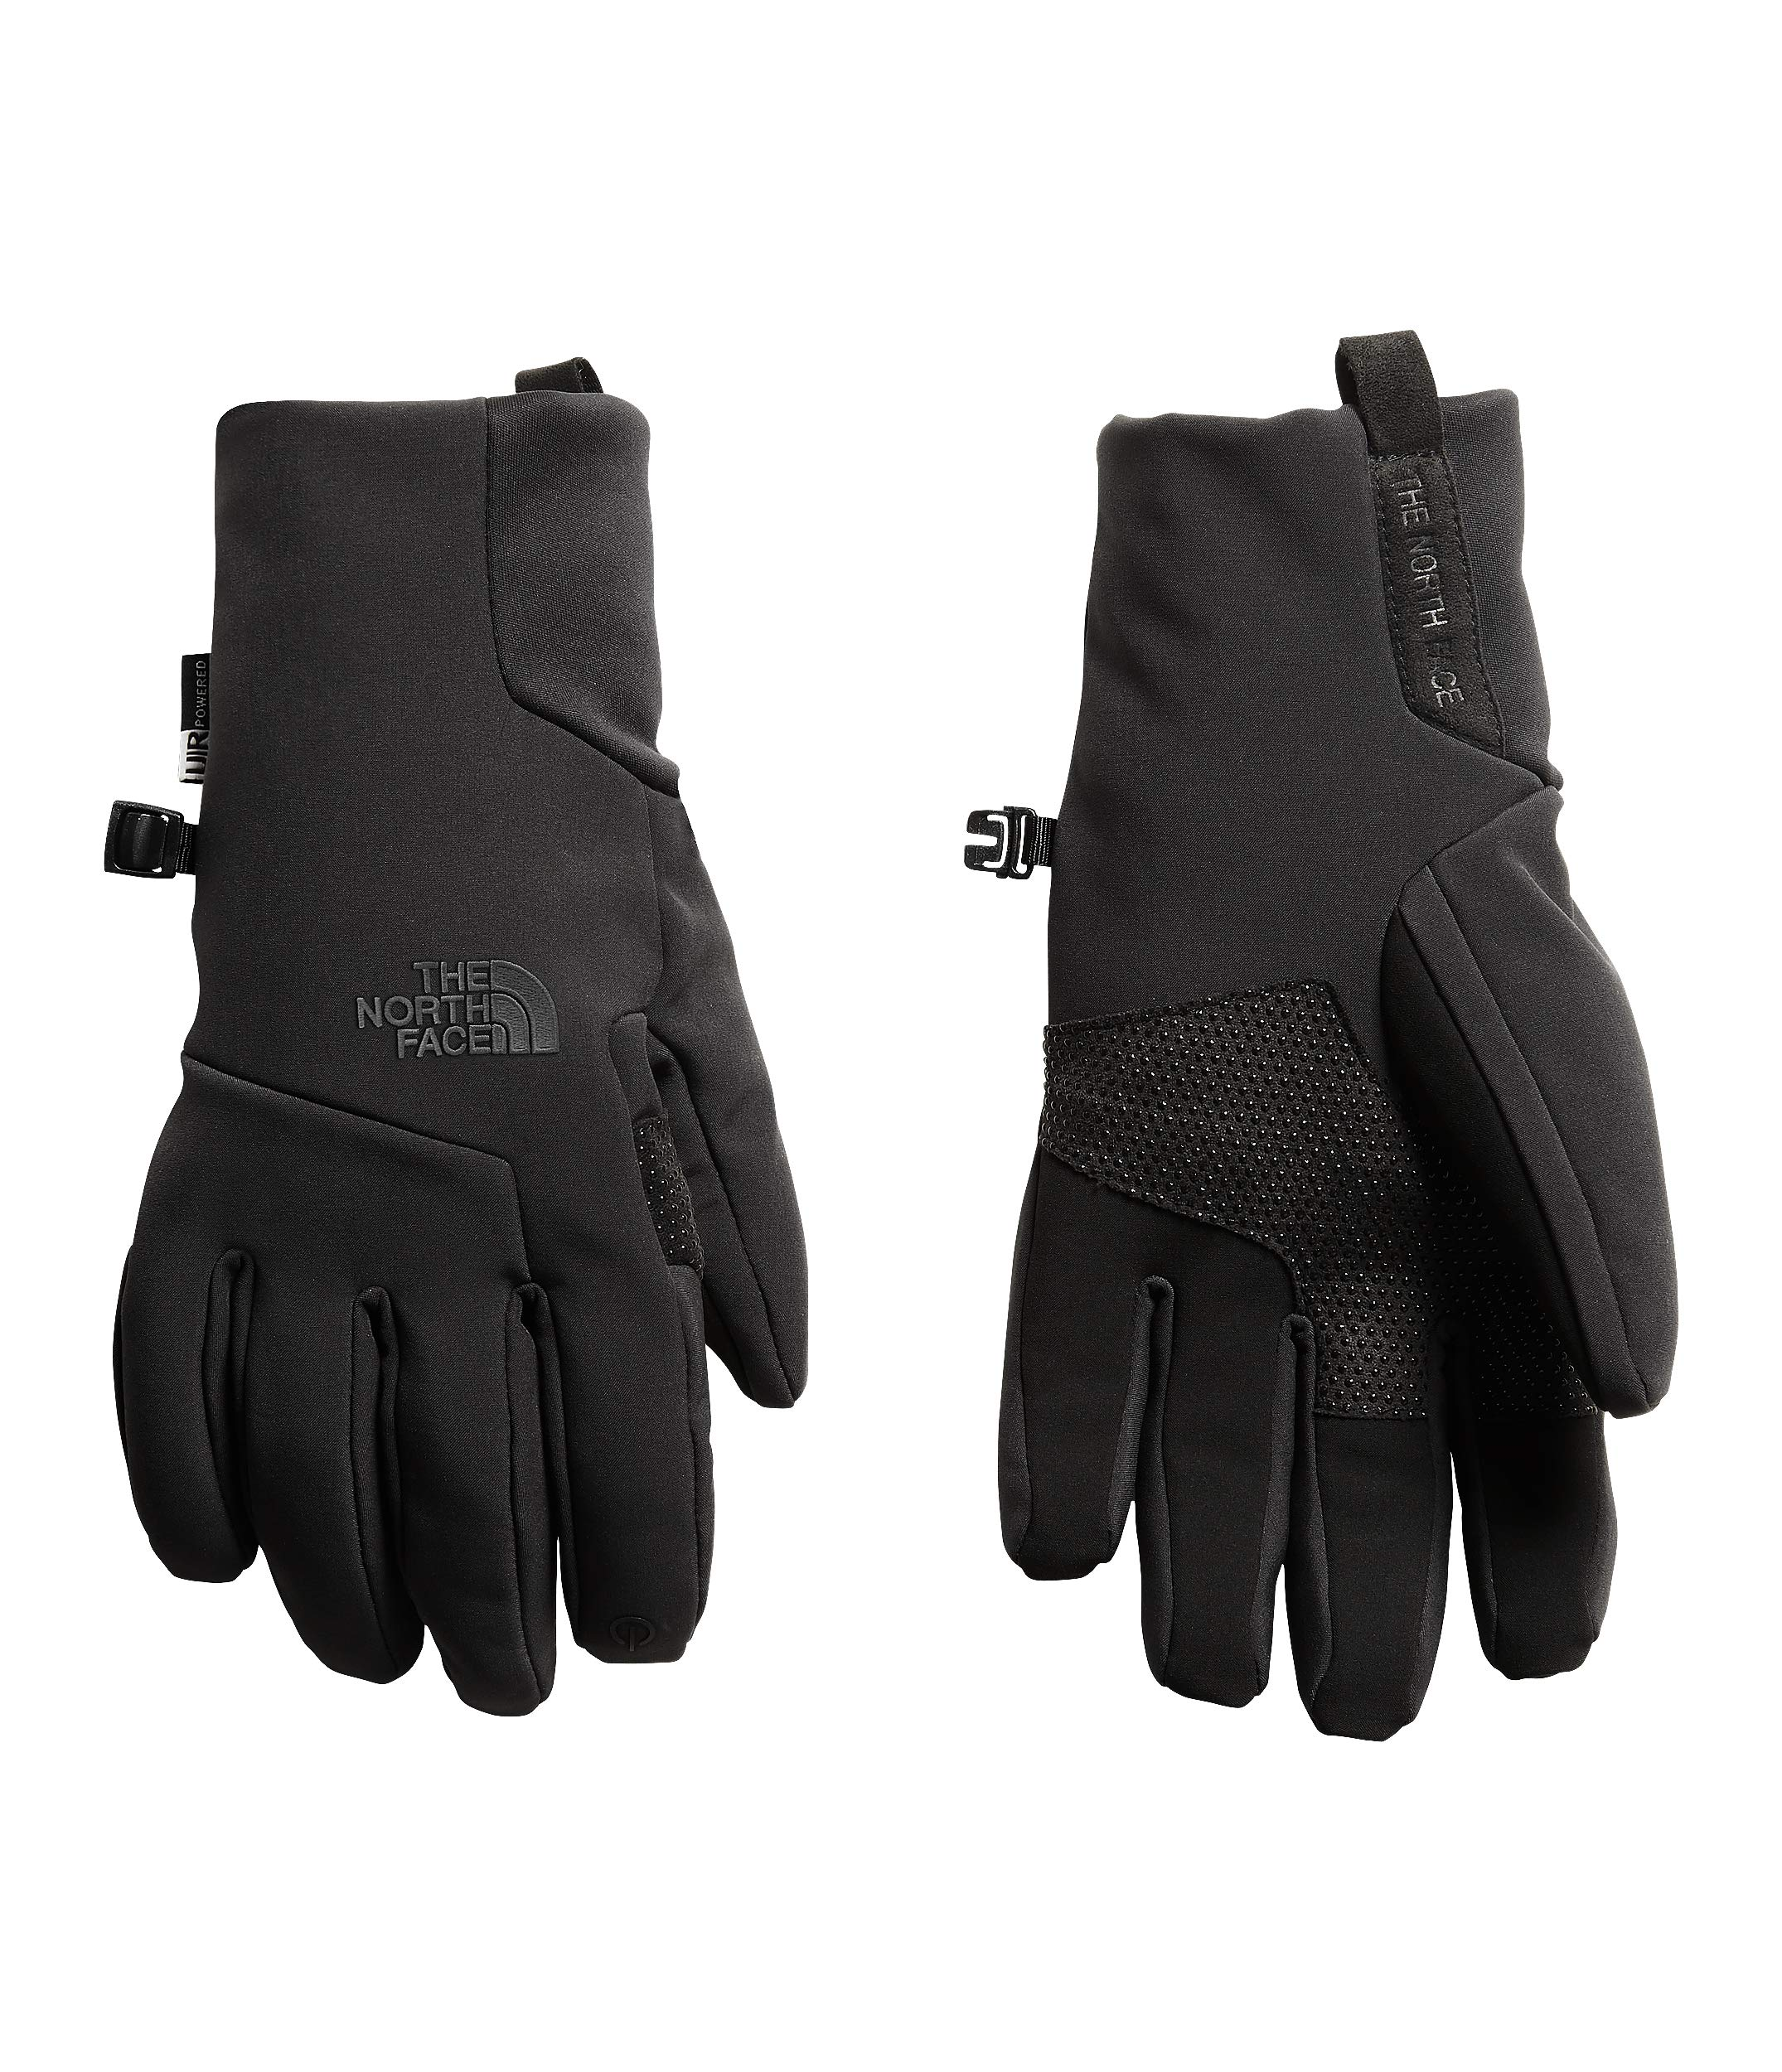 The North Face Men's Apex Etip Glove, TNF Black, Size L by The North Face (Image #1)